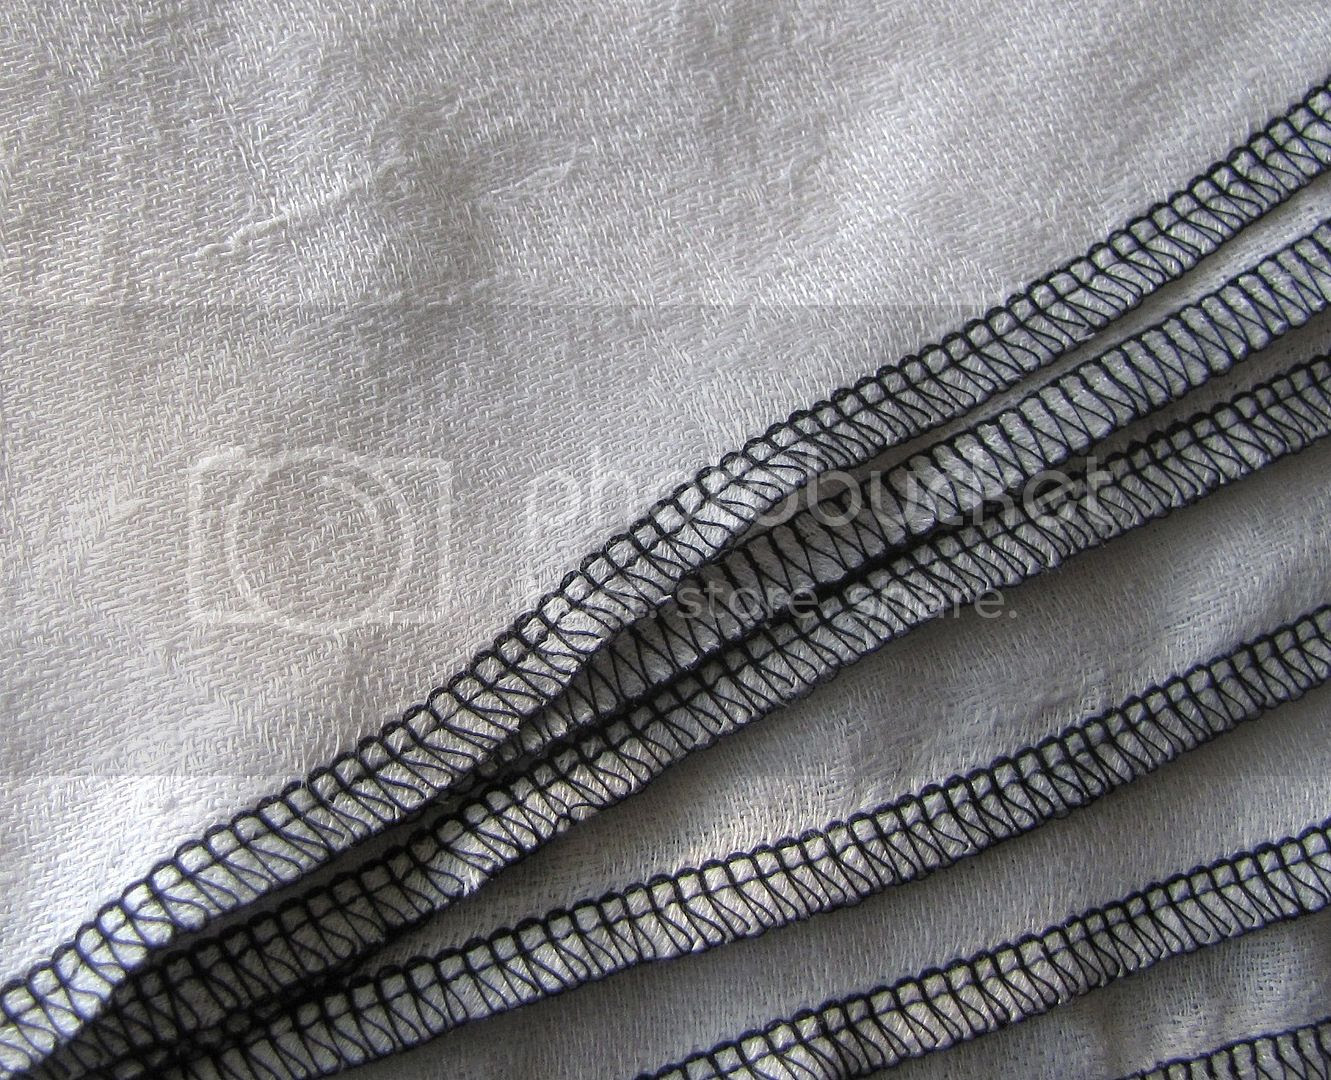 photo 100yearoldlinen.jpg